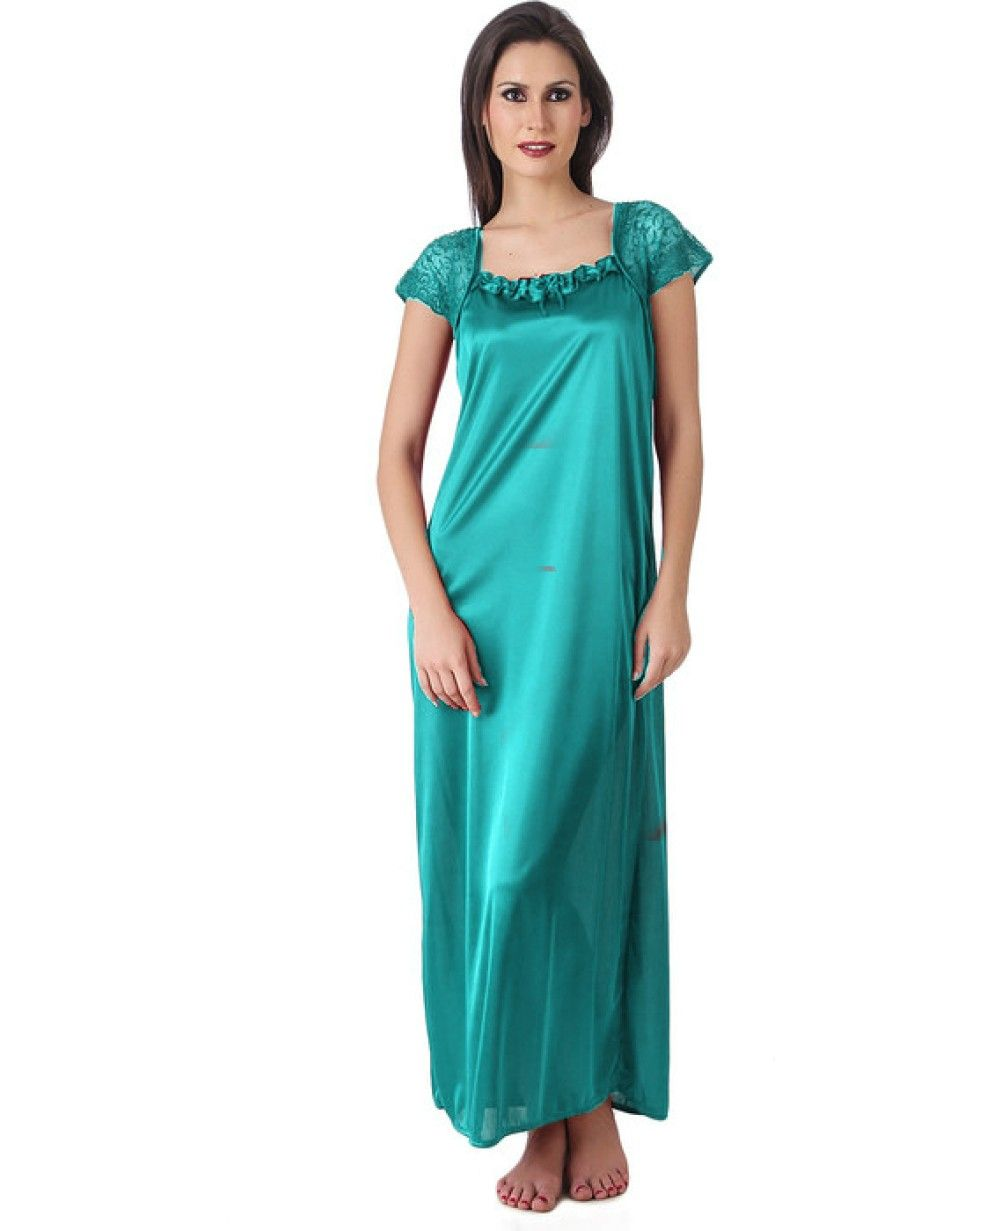 5c577a0f42 Women Satin Turquoise Color One Piece Nighty